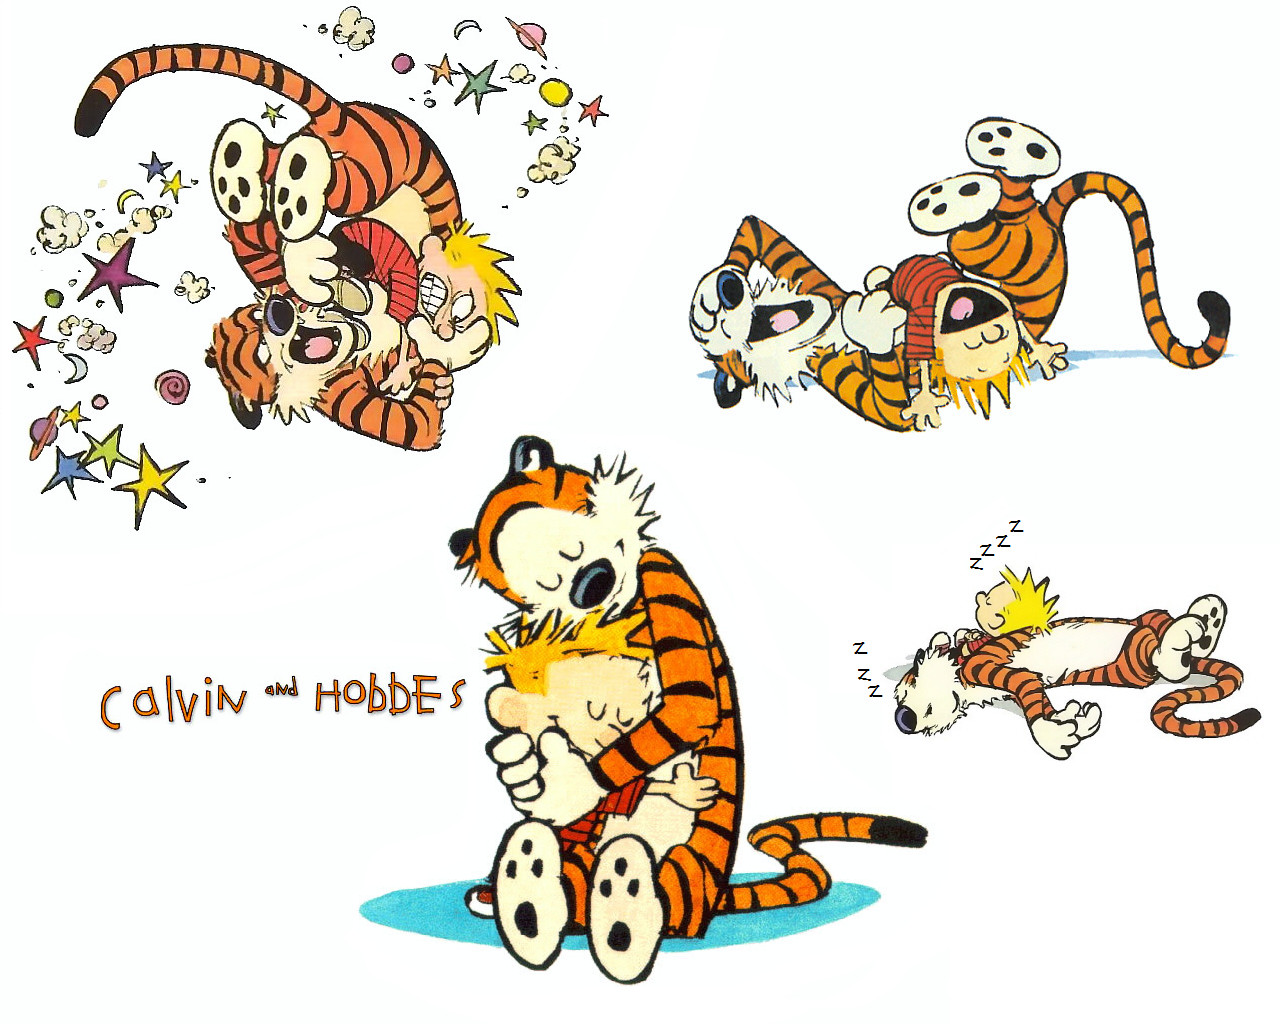 Calvin and Hobbes image from ifanboy